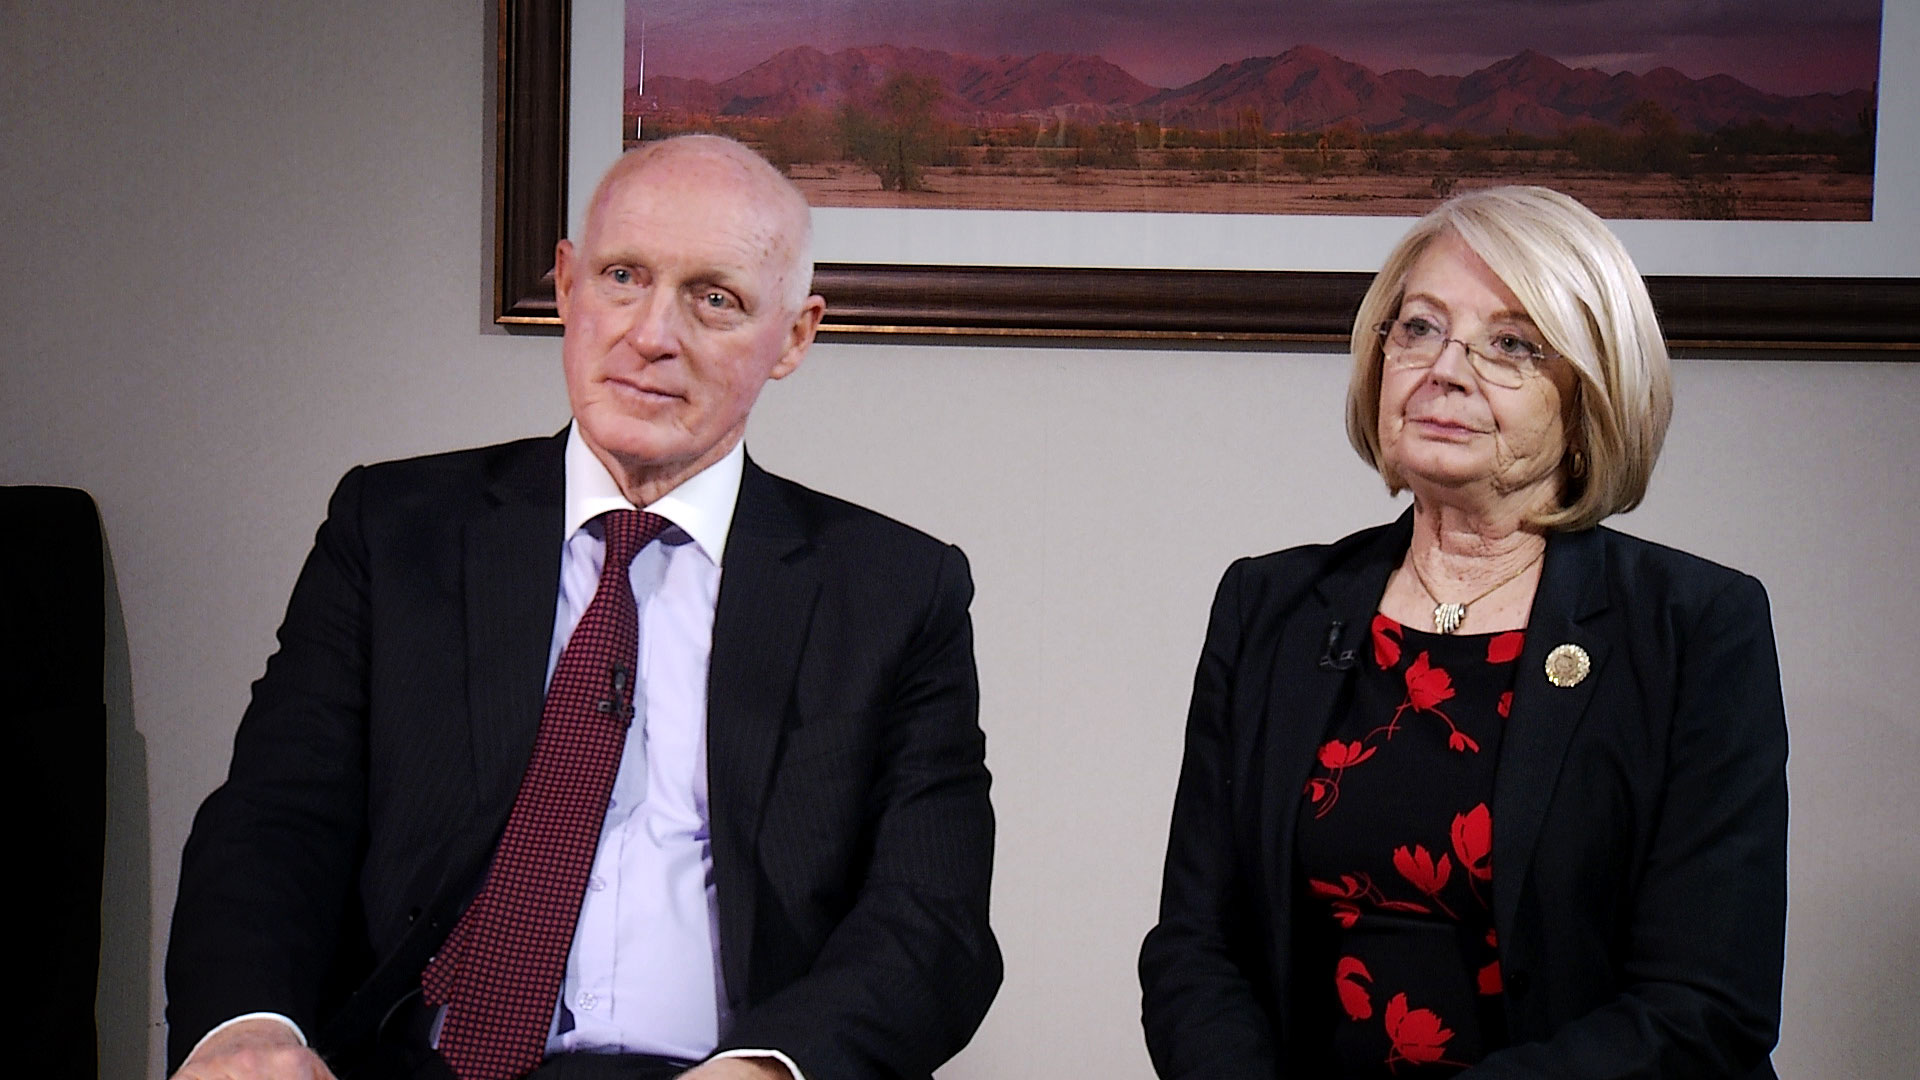 Arizona State House Speaker Rusty Bowers and State Senate President Karen Fann sit for an interview at the Arizona Biltmore in Phoenix on Jan. 10, 2020.